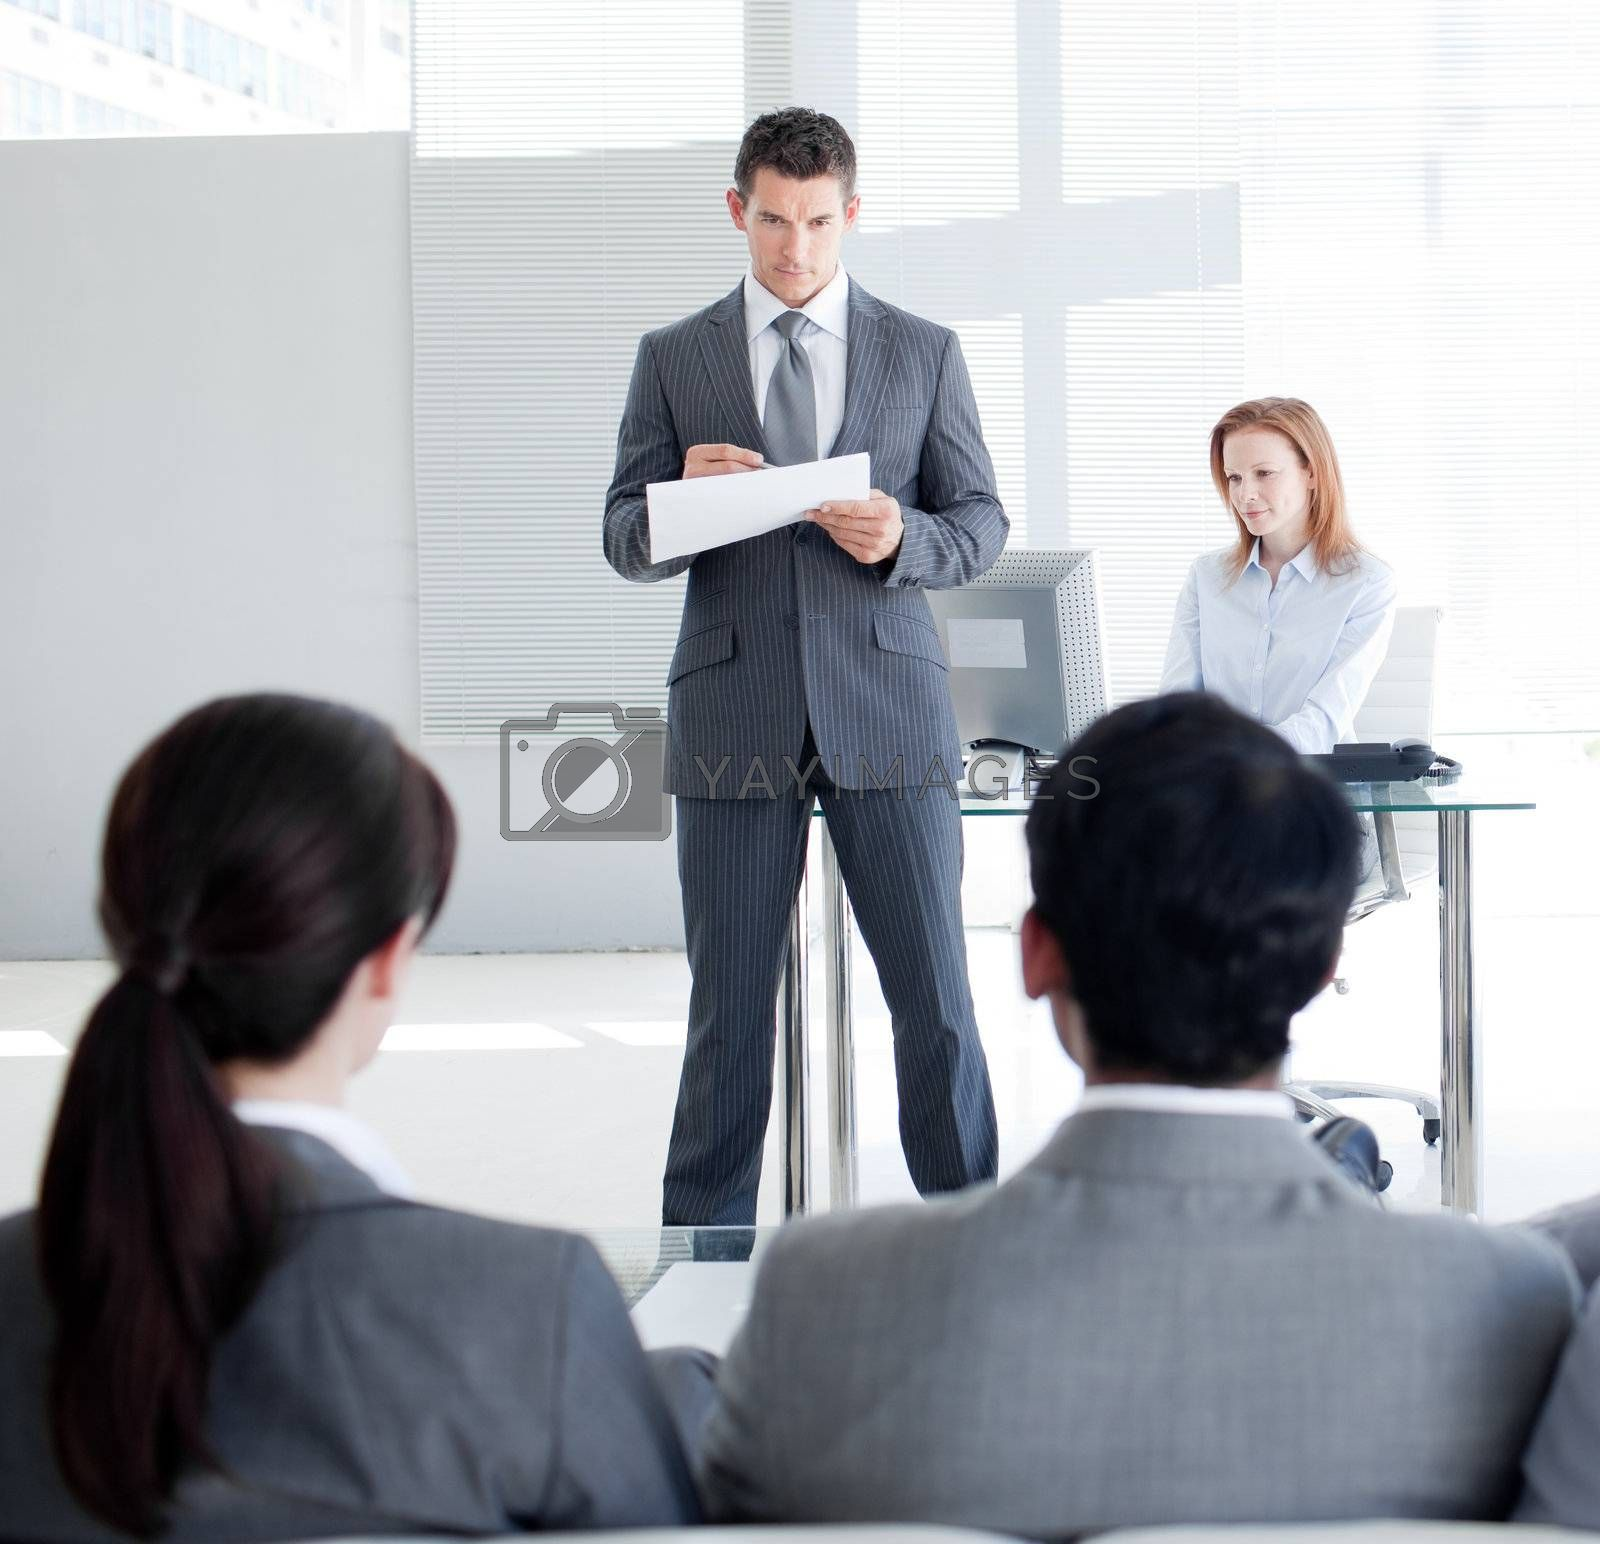 An attractive teamleader talking to his colleagues in an office